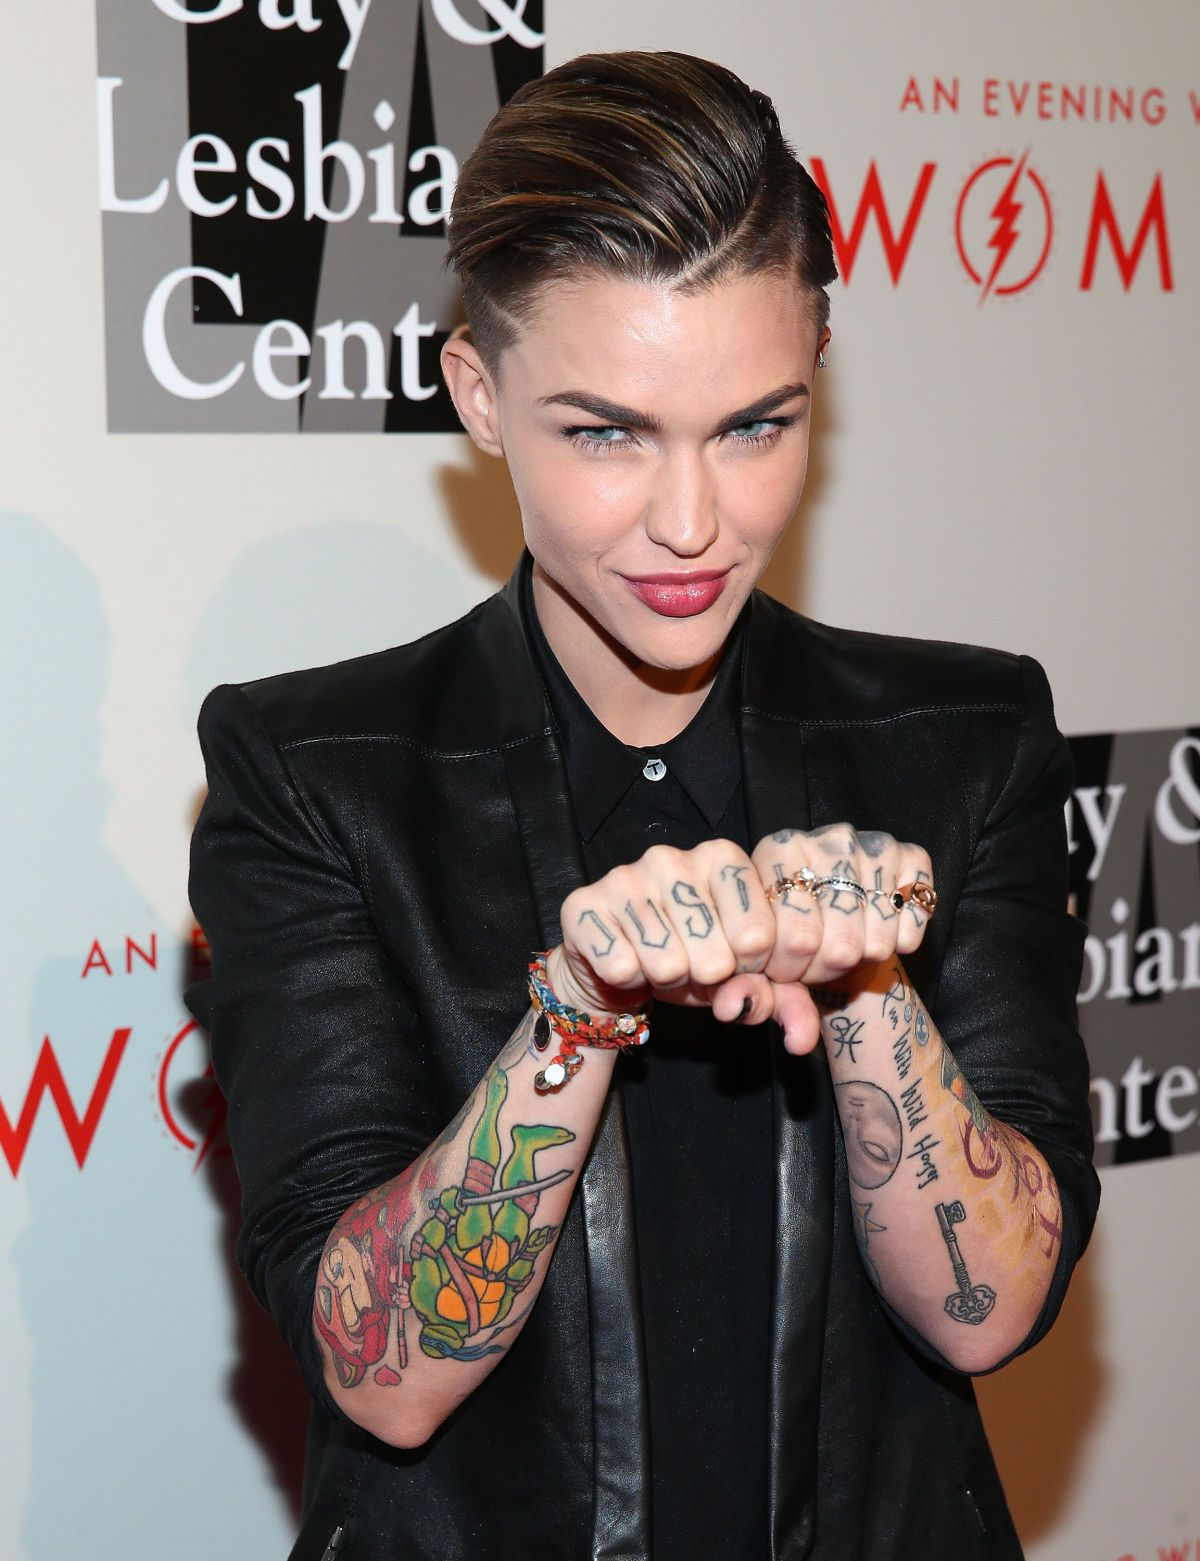 ruby rose ninja turtle tattoo - google search | halloween 2015